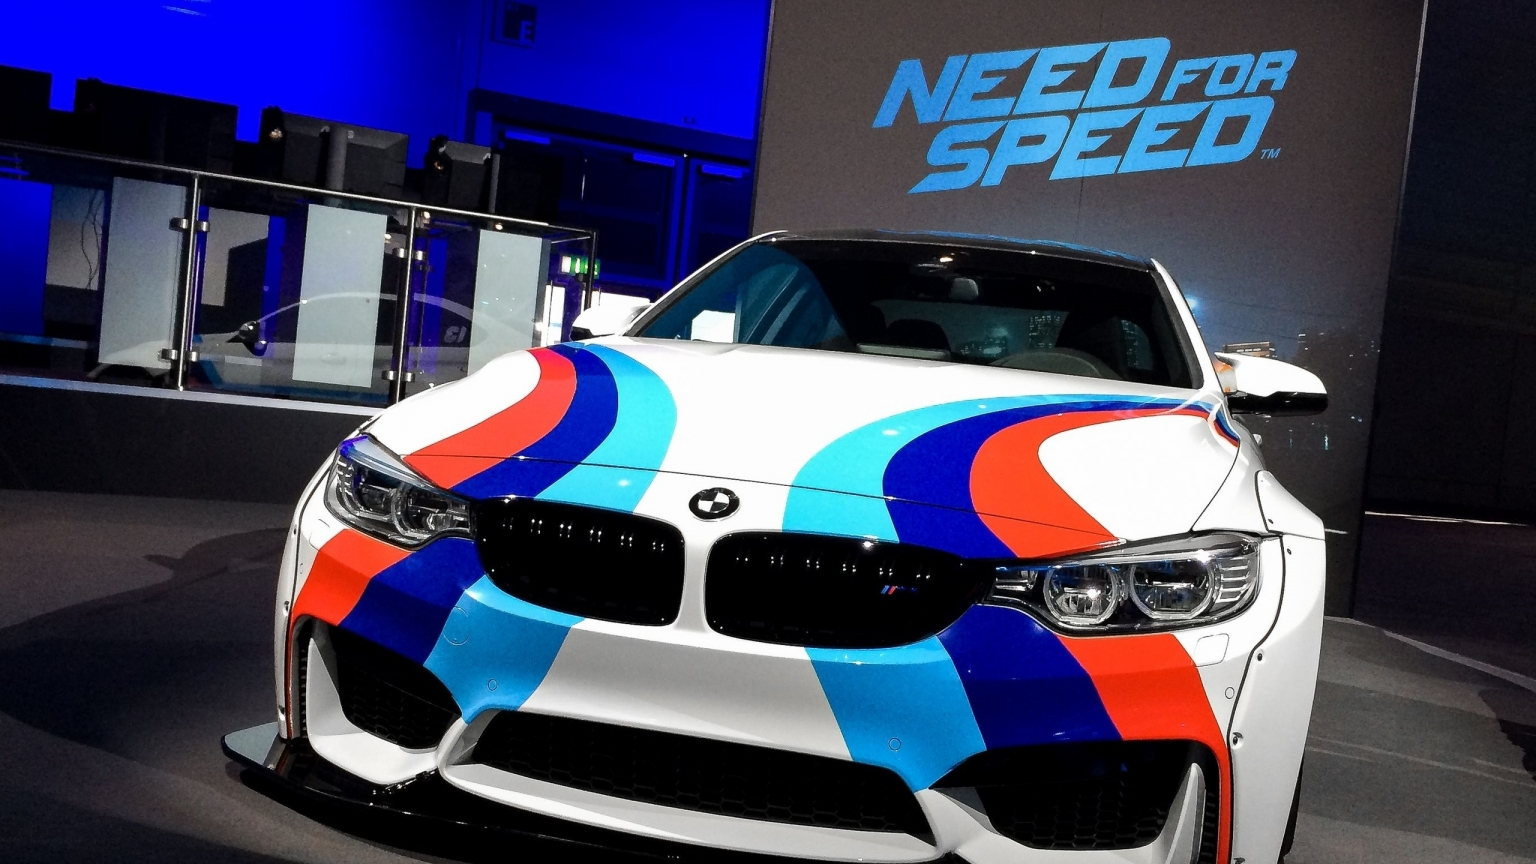 Need For Speed BMW for 1536 x 864 HDTV resolution